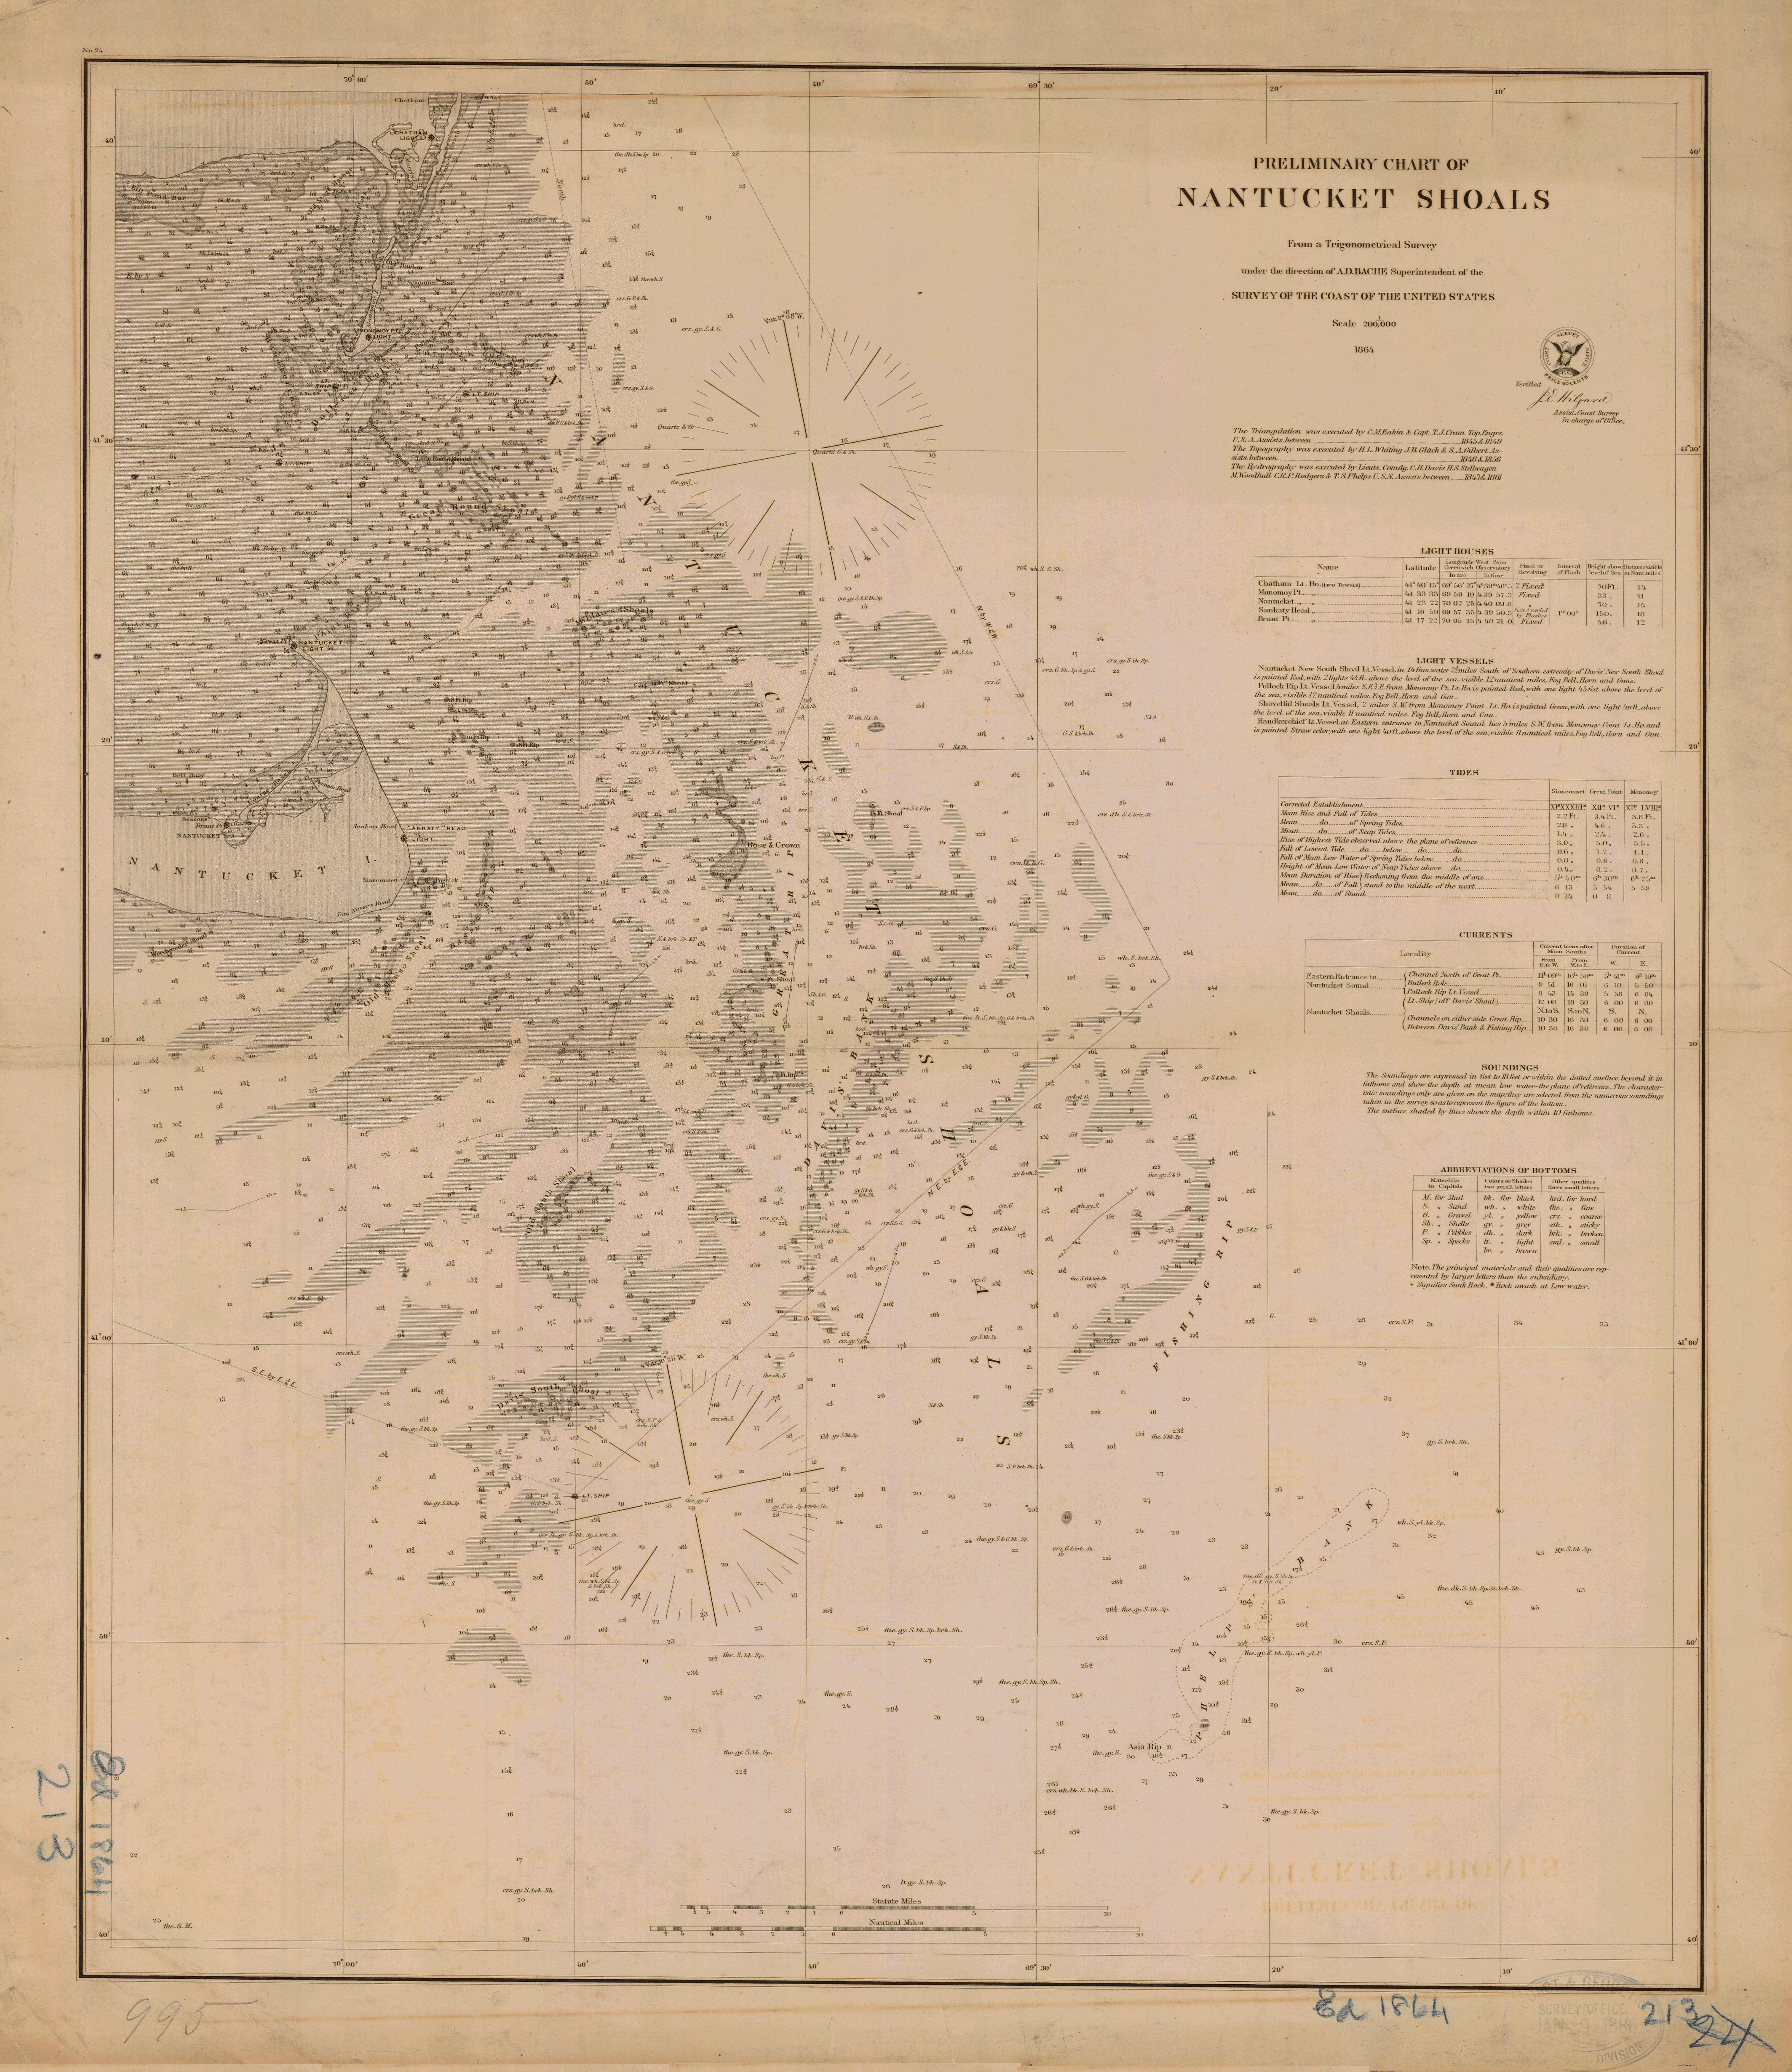 Nautical charts contribute to economic growth and national defense issued a new preliminary chart displaying those updated discoveries in 1893 the coast and geodetic survey nvjuhfo Gallery